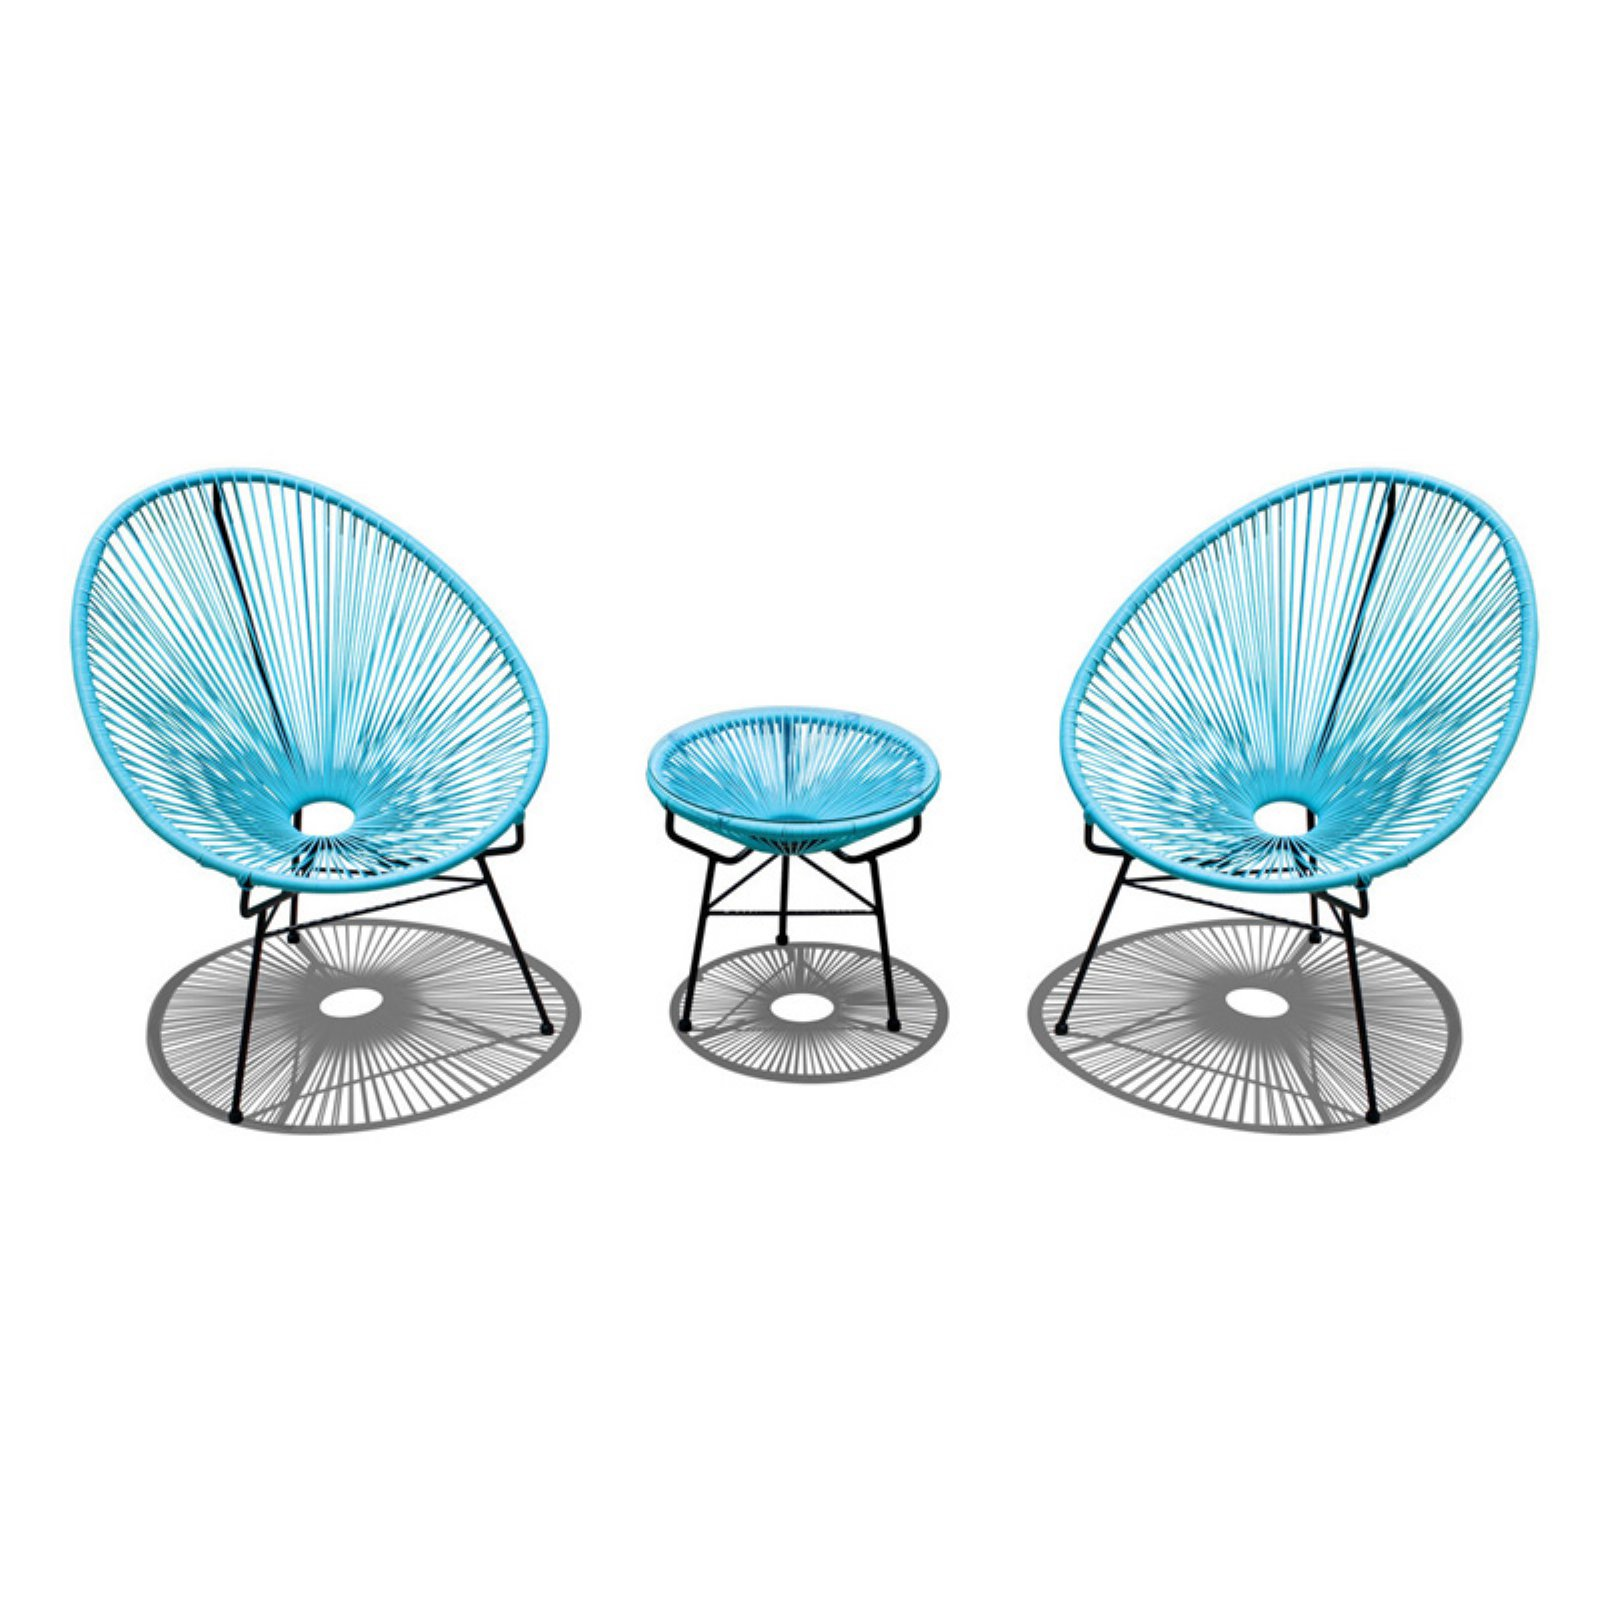 Harmonia Living Acapulco 3 Piece Chat Set With Images Acapulco Chair Patio Dining Chairs Conversation Set Patio